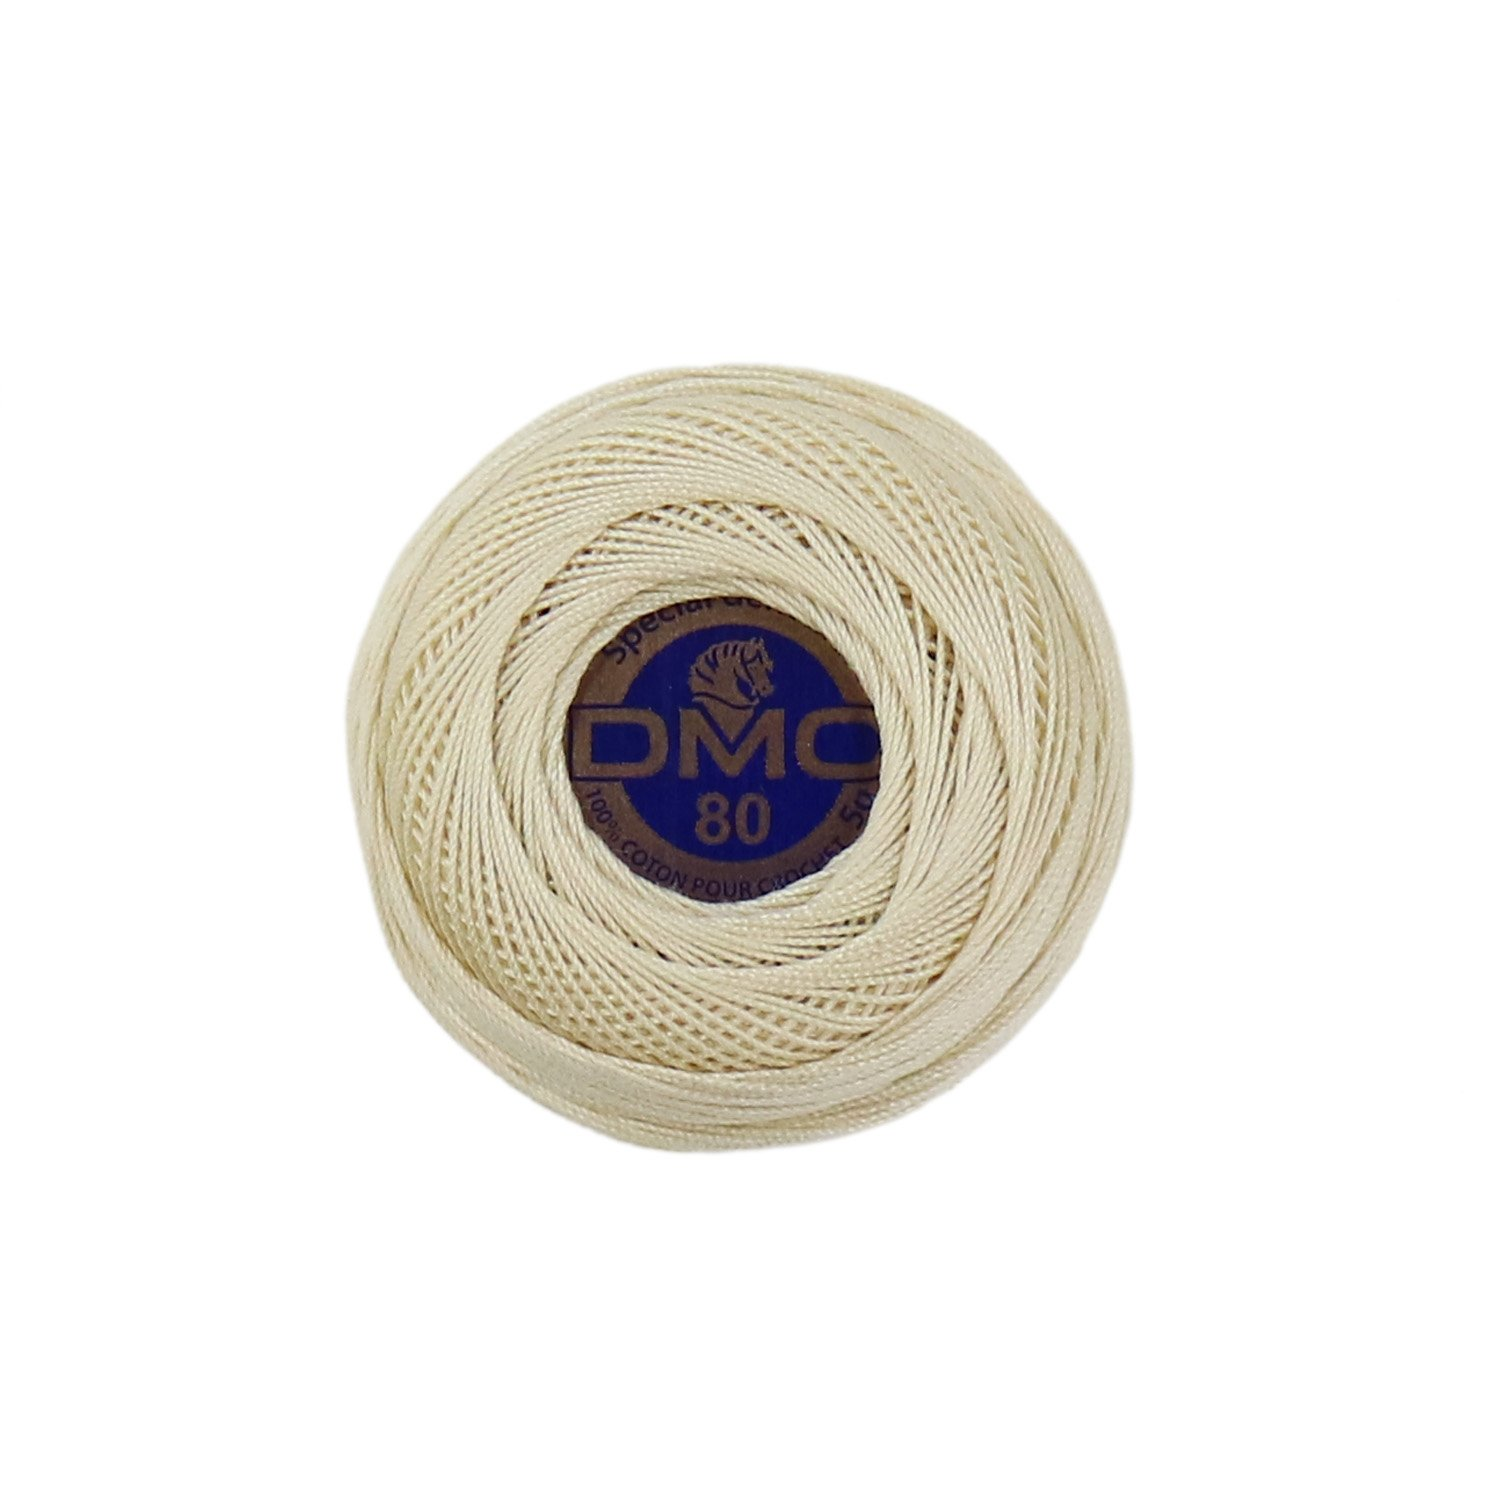 DMC Brilliant Tatting Cotton Sz 80 Ecru DMC19-80